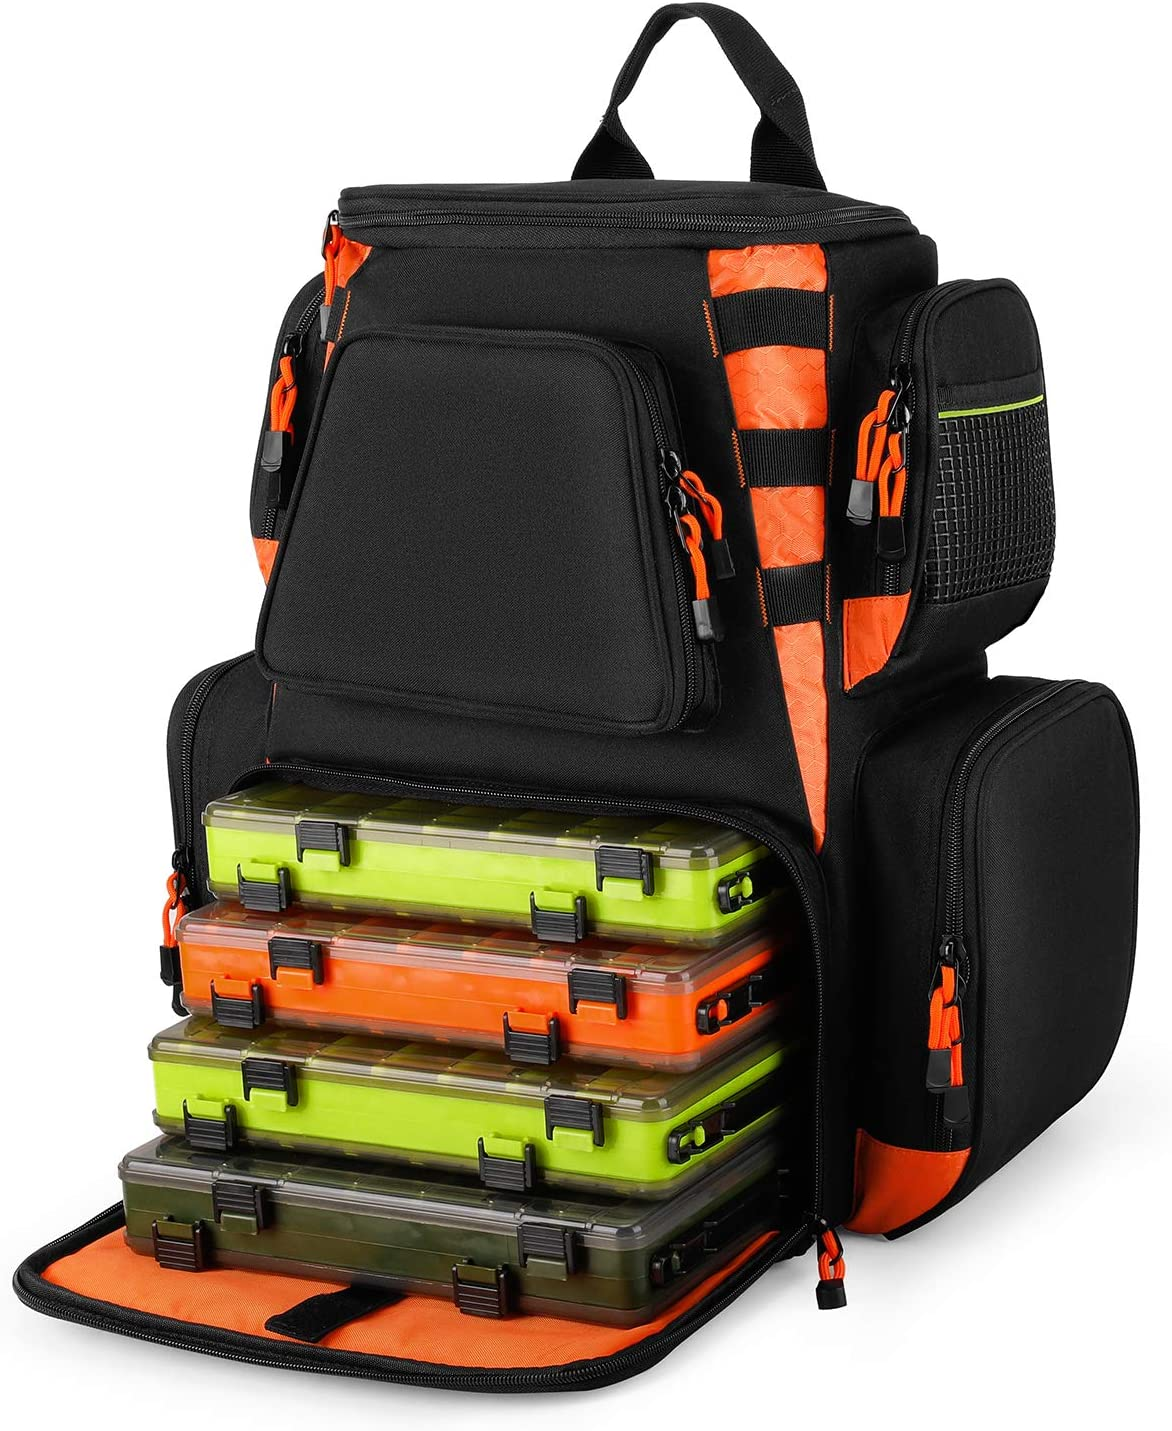 Magreel 25L Fishing Tackle Water-Resistant Backpack Max Cash special price 81% OFF w Bag